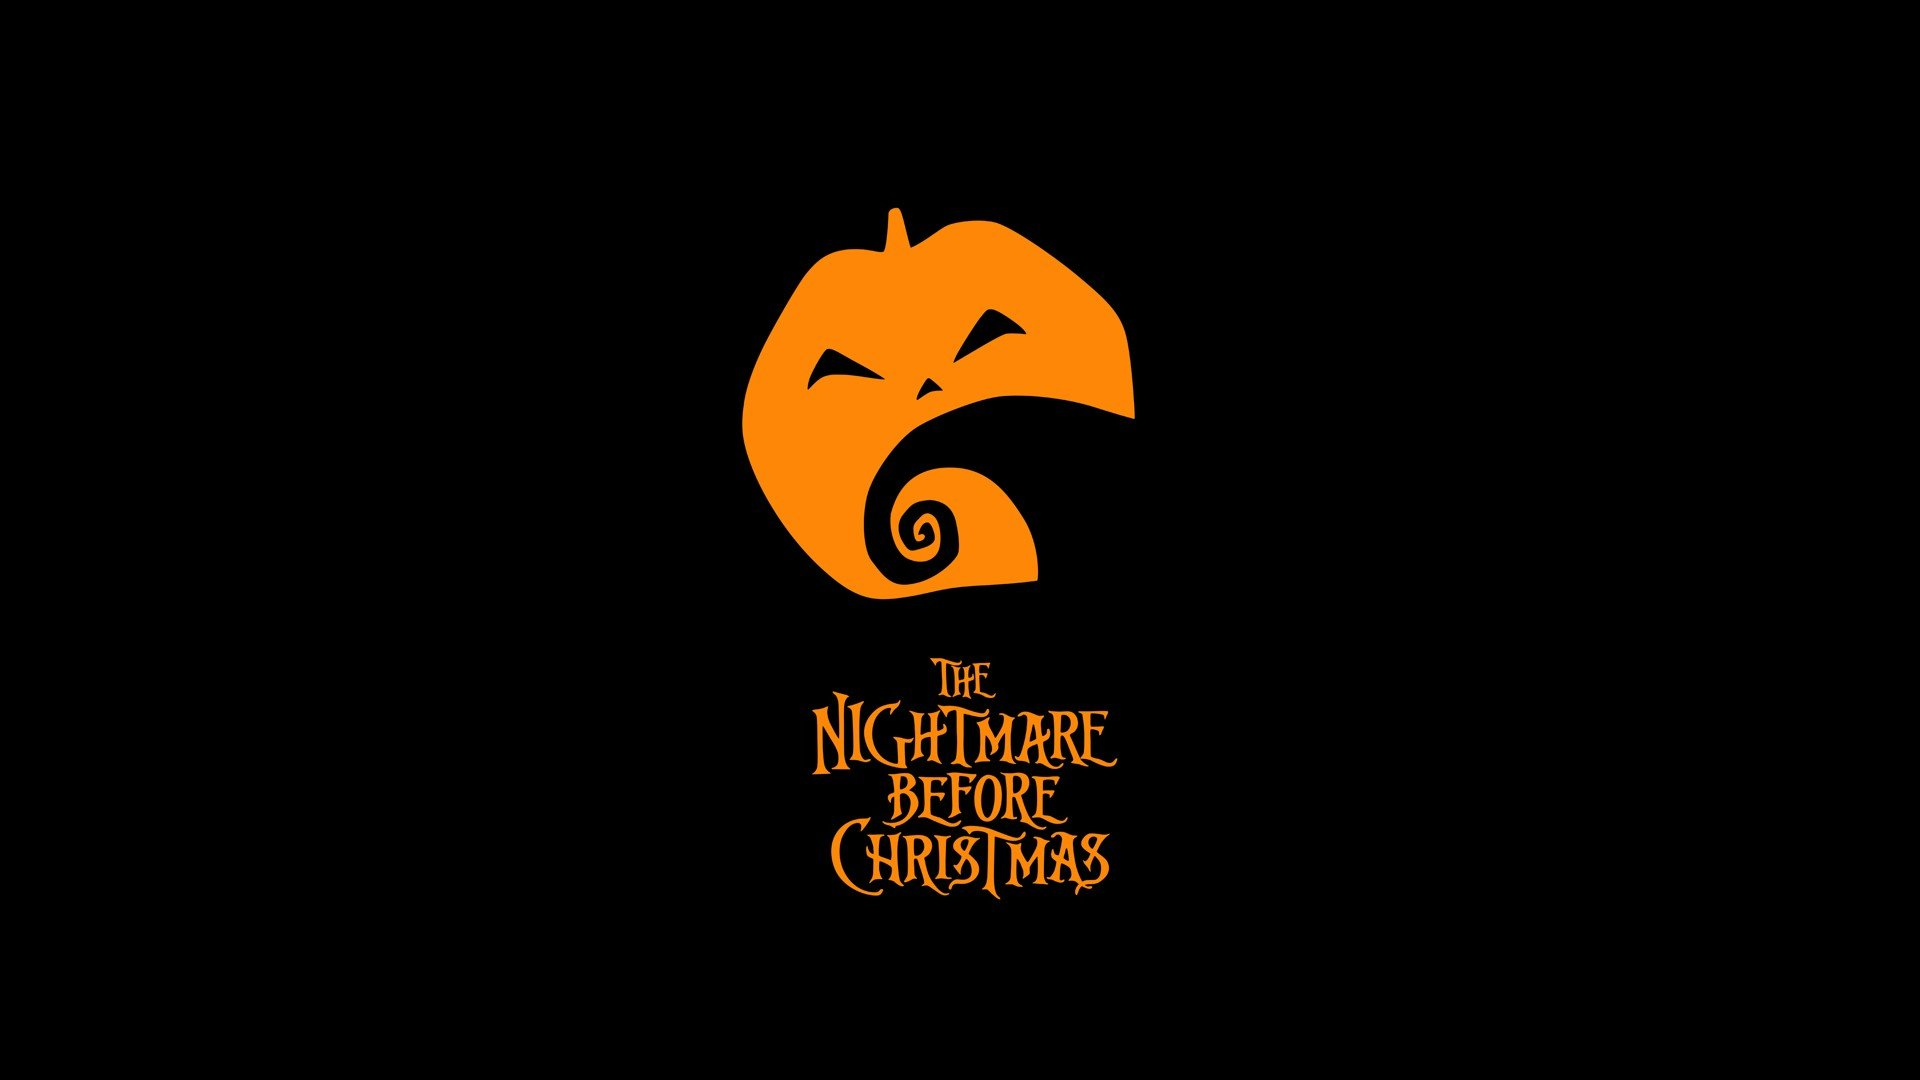 Free Download Coders Wallpaper Abyss Films The Nightmare Before